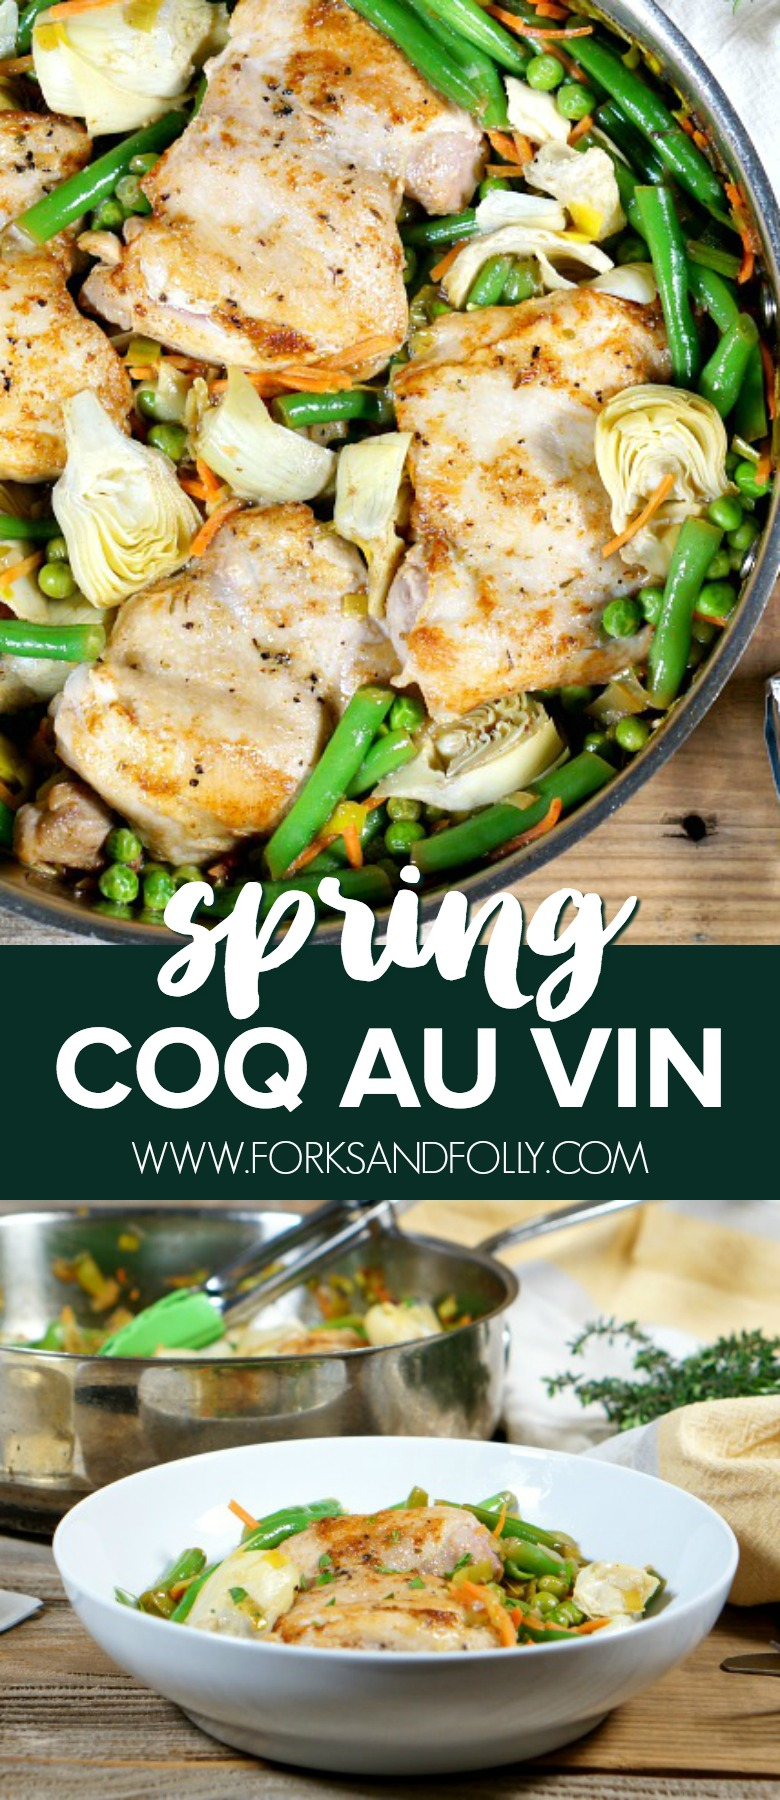 Our version of Spring Coq au Vin takes a lighter approach to this classic French dish with seasonal veggies and a light butter-wine sauce.